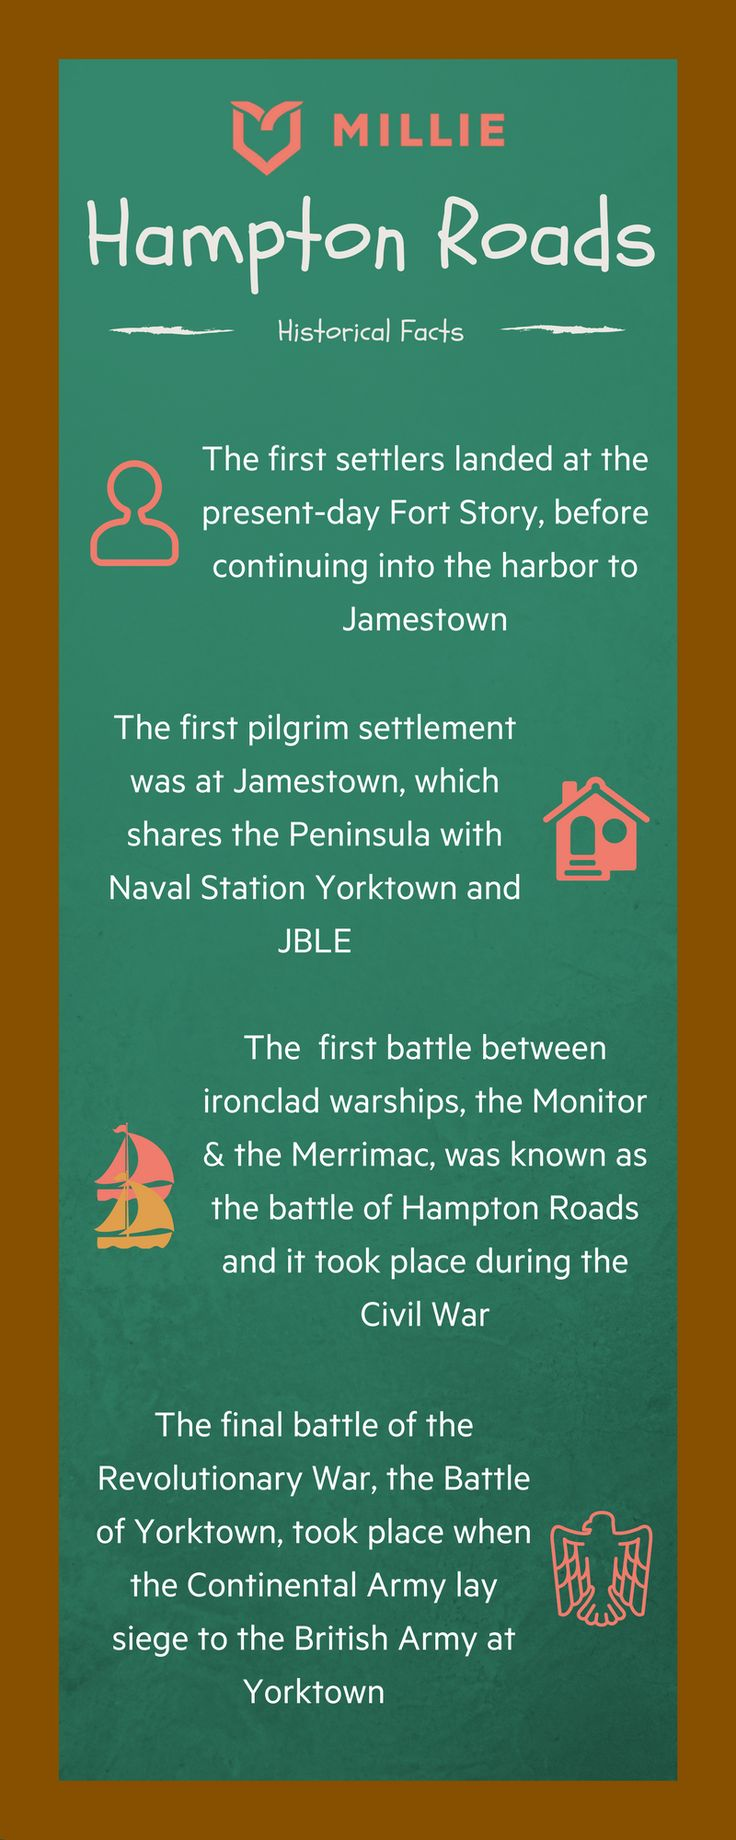 5 Things to know about Hampton Roads.  Visit gomillie.com for more information on Hampton Roads.